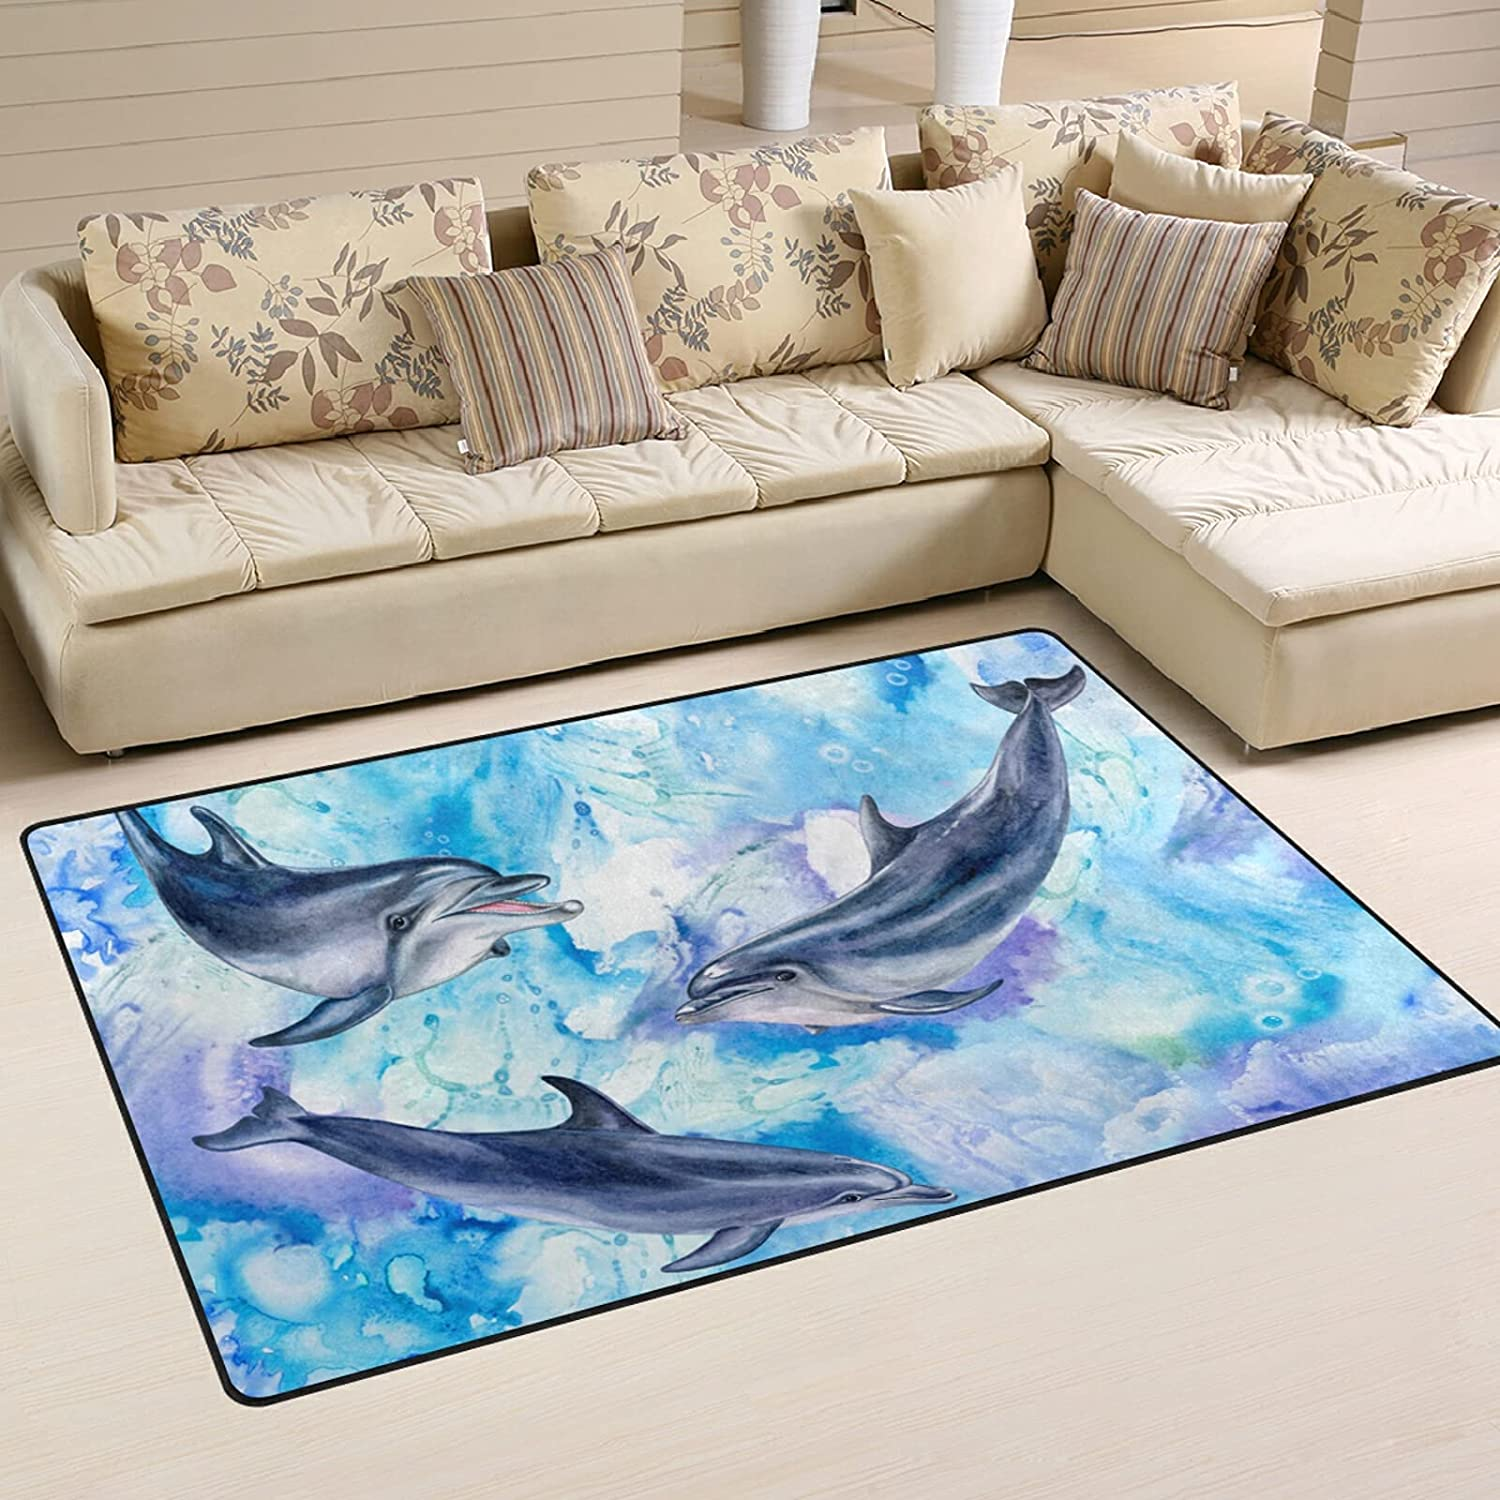 Sea Industry No. 1 Blue Dolphins Large Soft Area Rug f Mat Rugs Playmat Ranking TOP18 Nursery